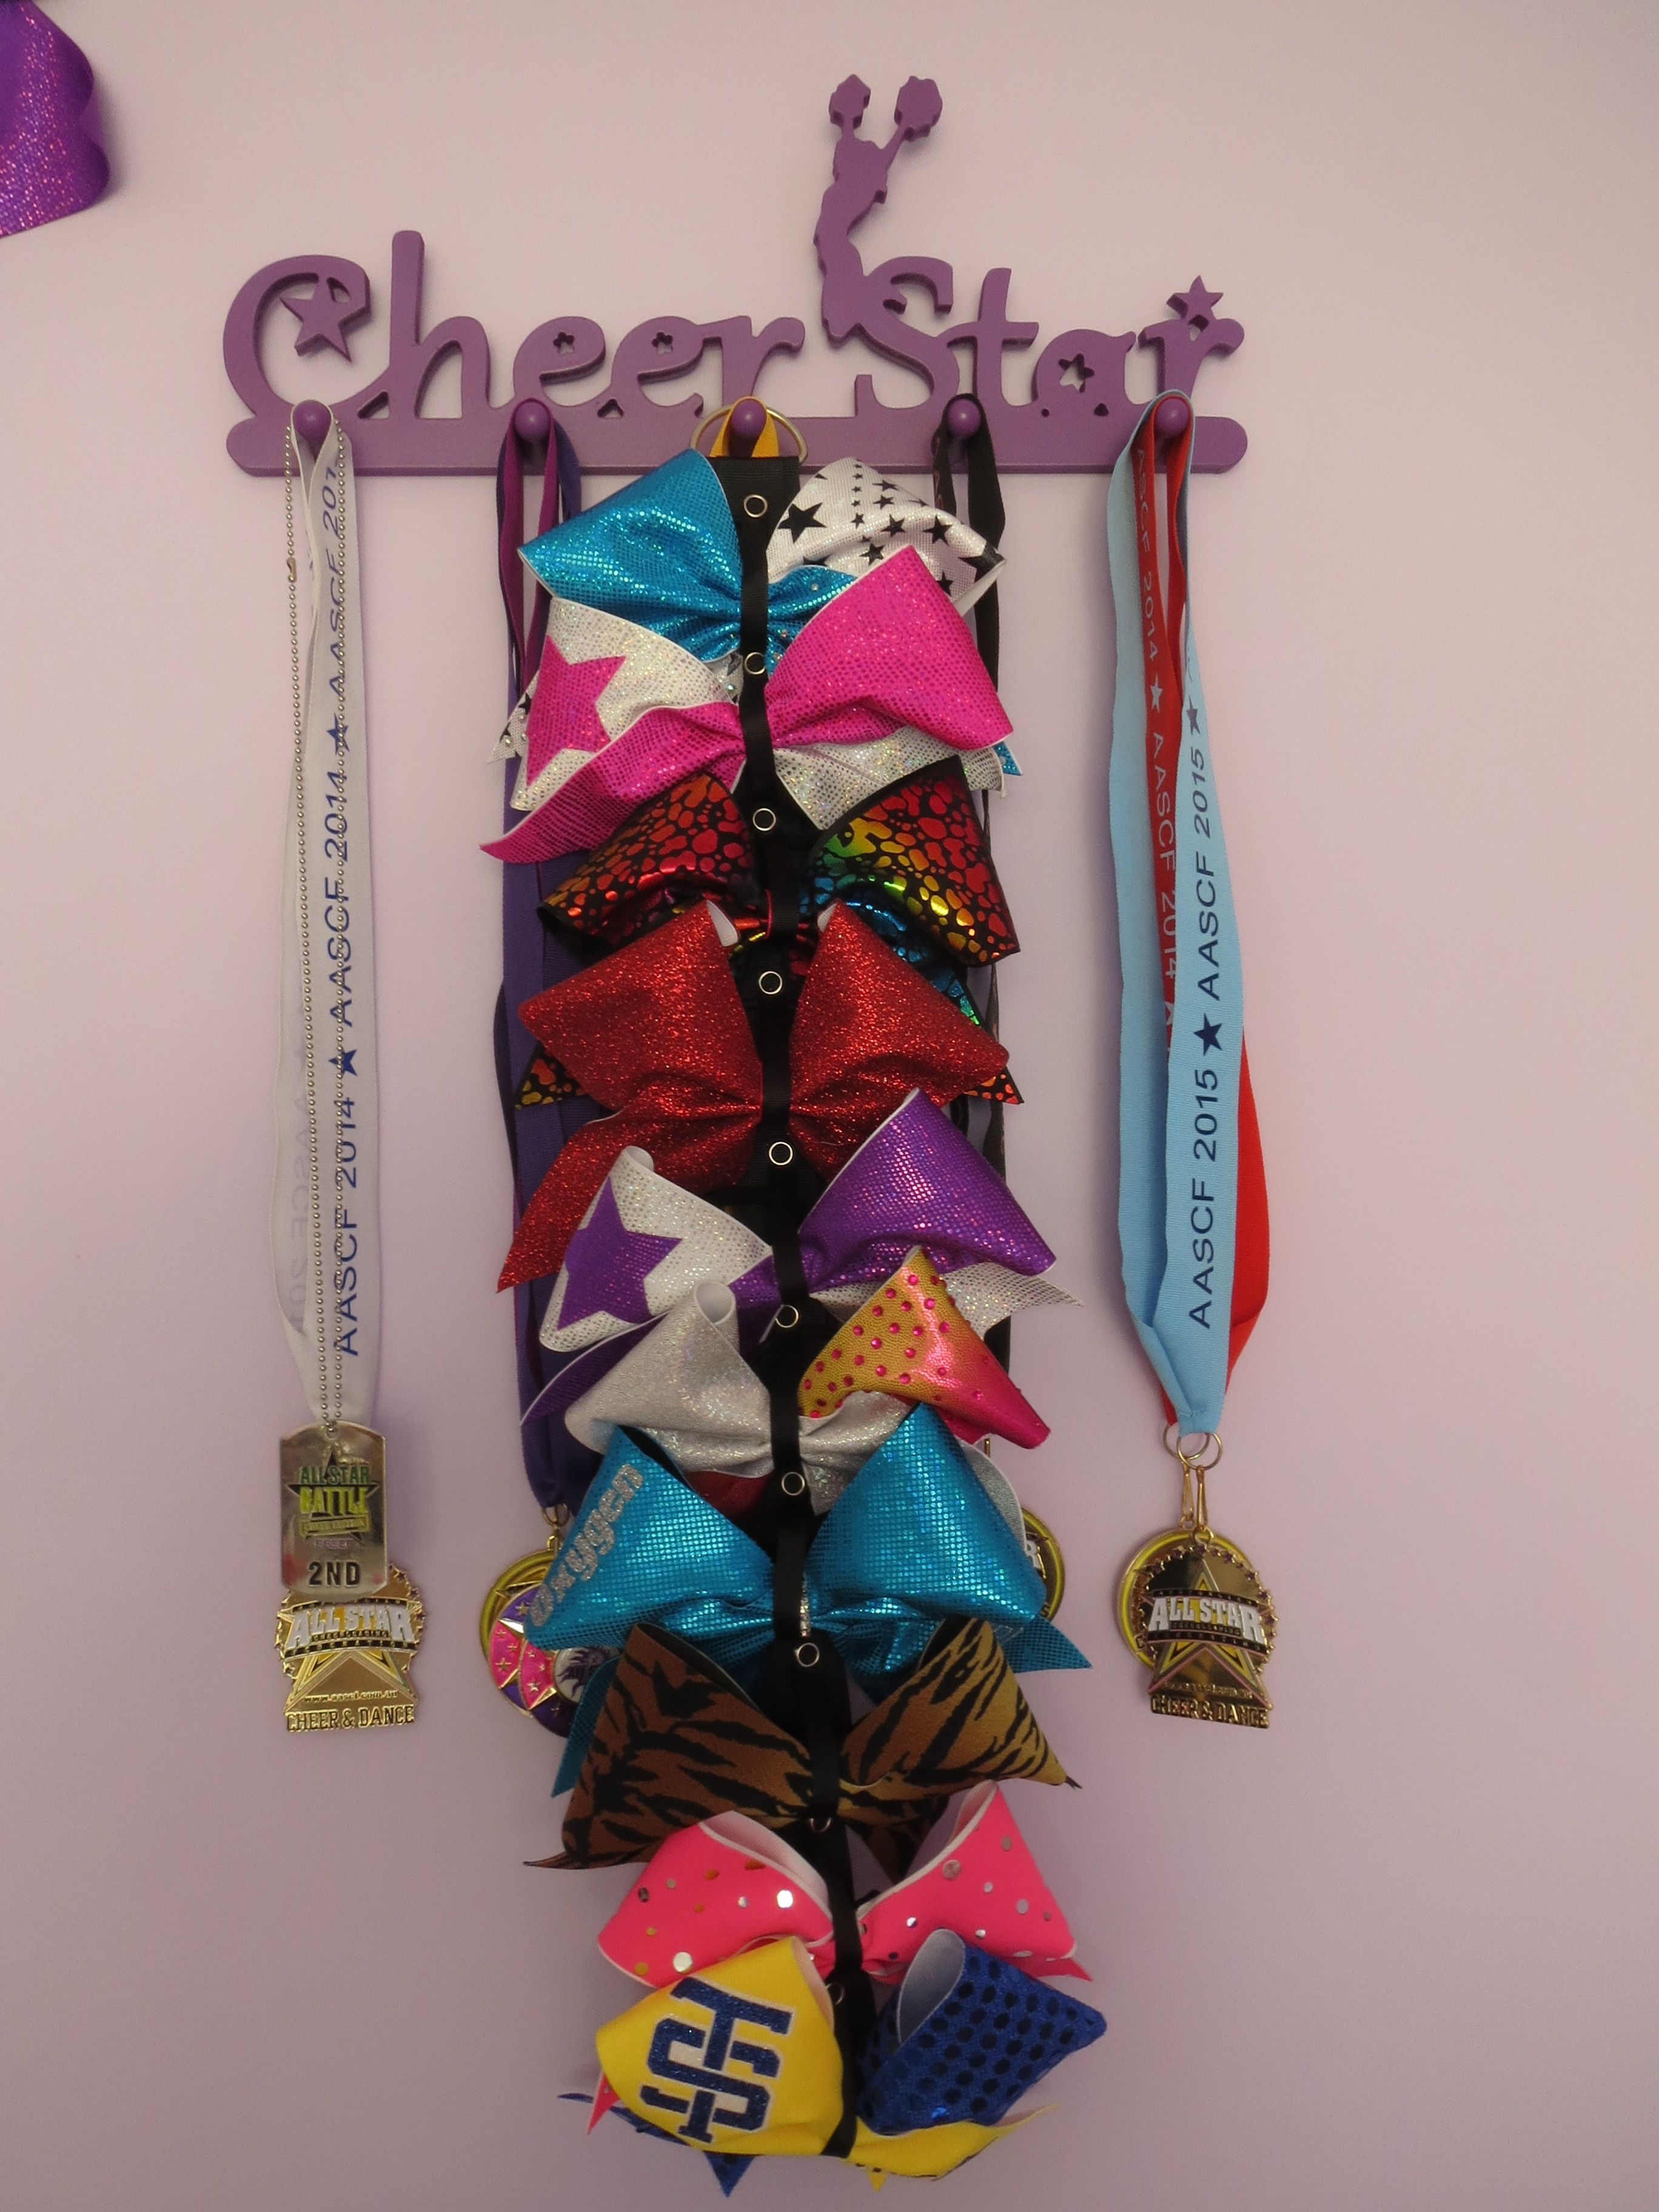 Cheer bow holder for cheer bows and hair bows cheer bow hanger - Cheer Star Australia Medal Holder And Cheer Bow Holder